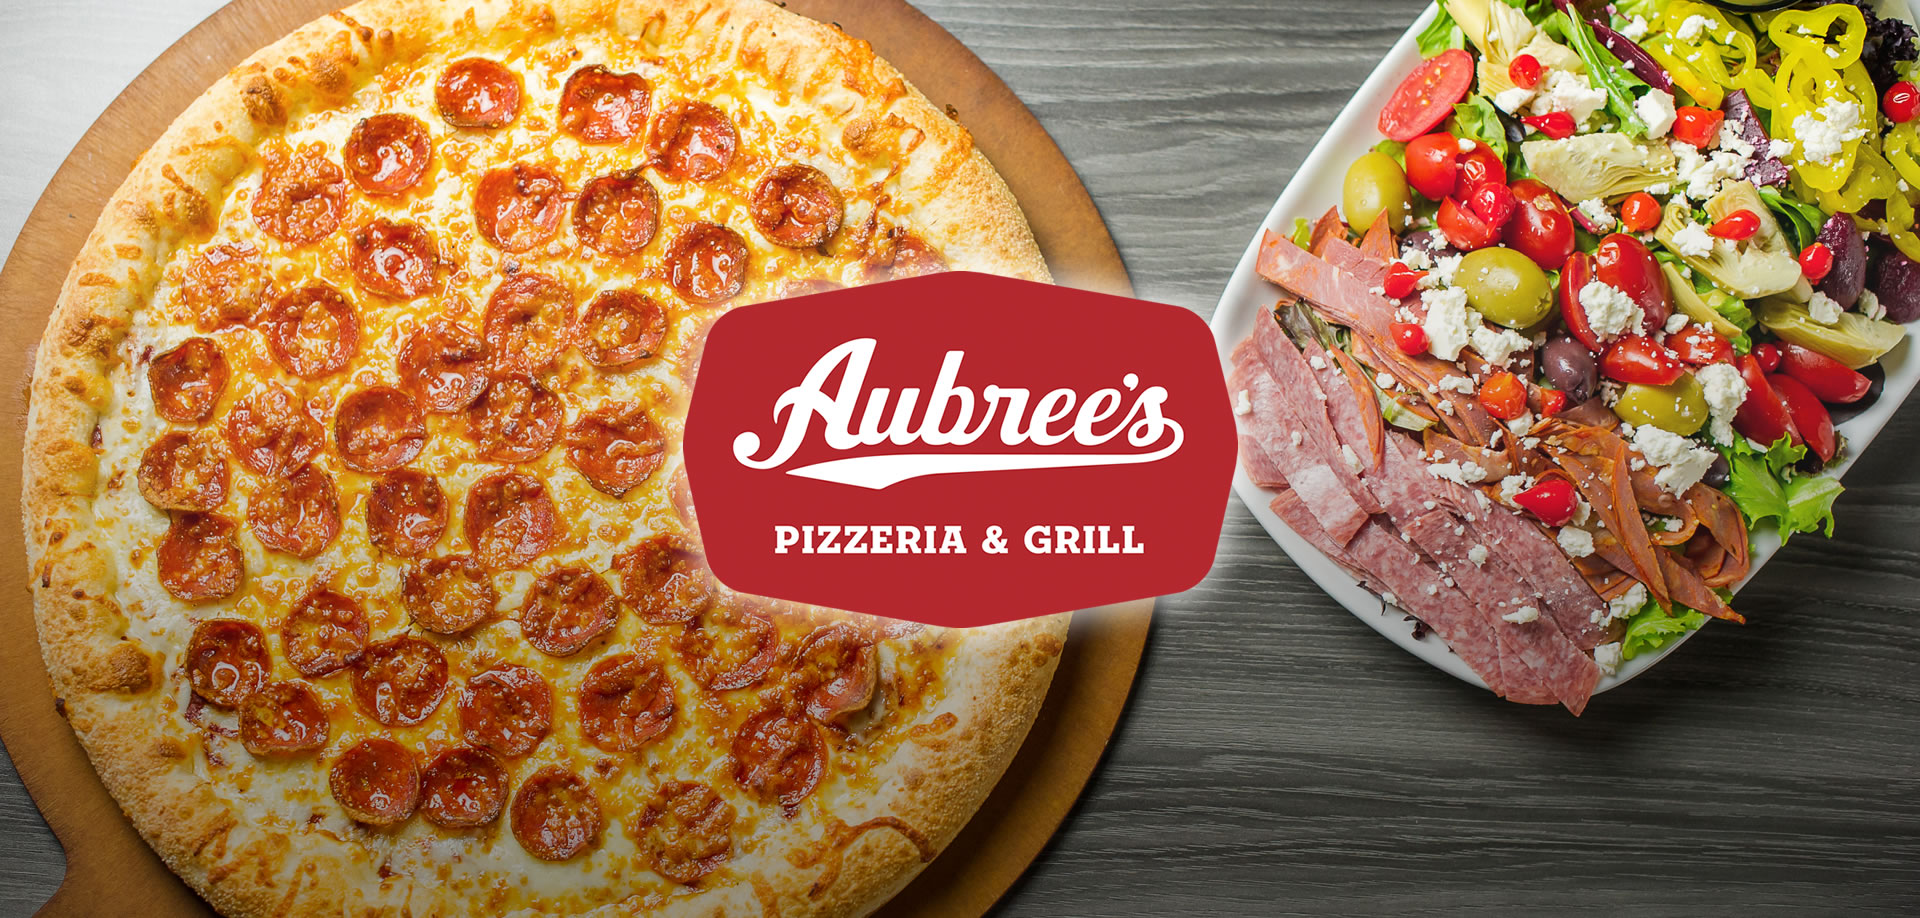 Pizza Places Open On Christmas.Aubree S Pizzeria And Grill